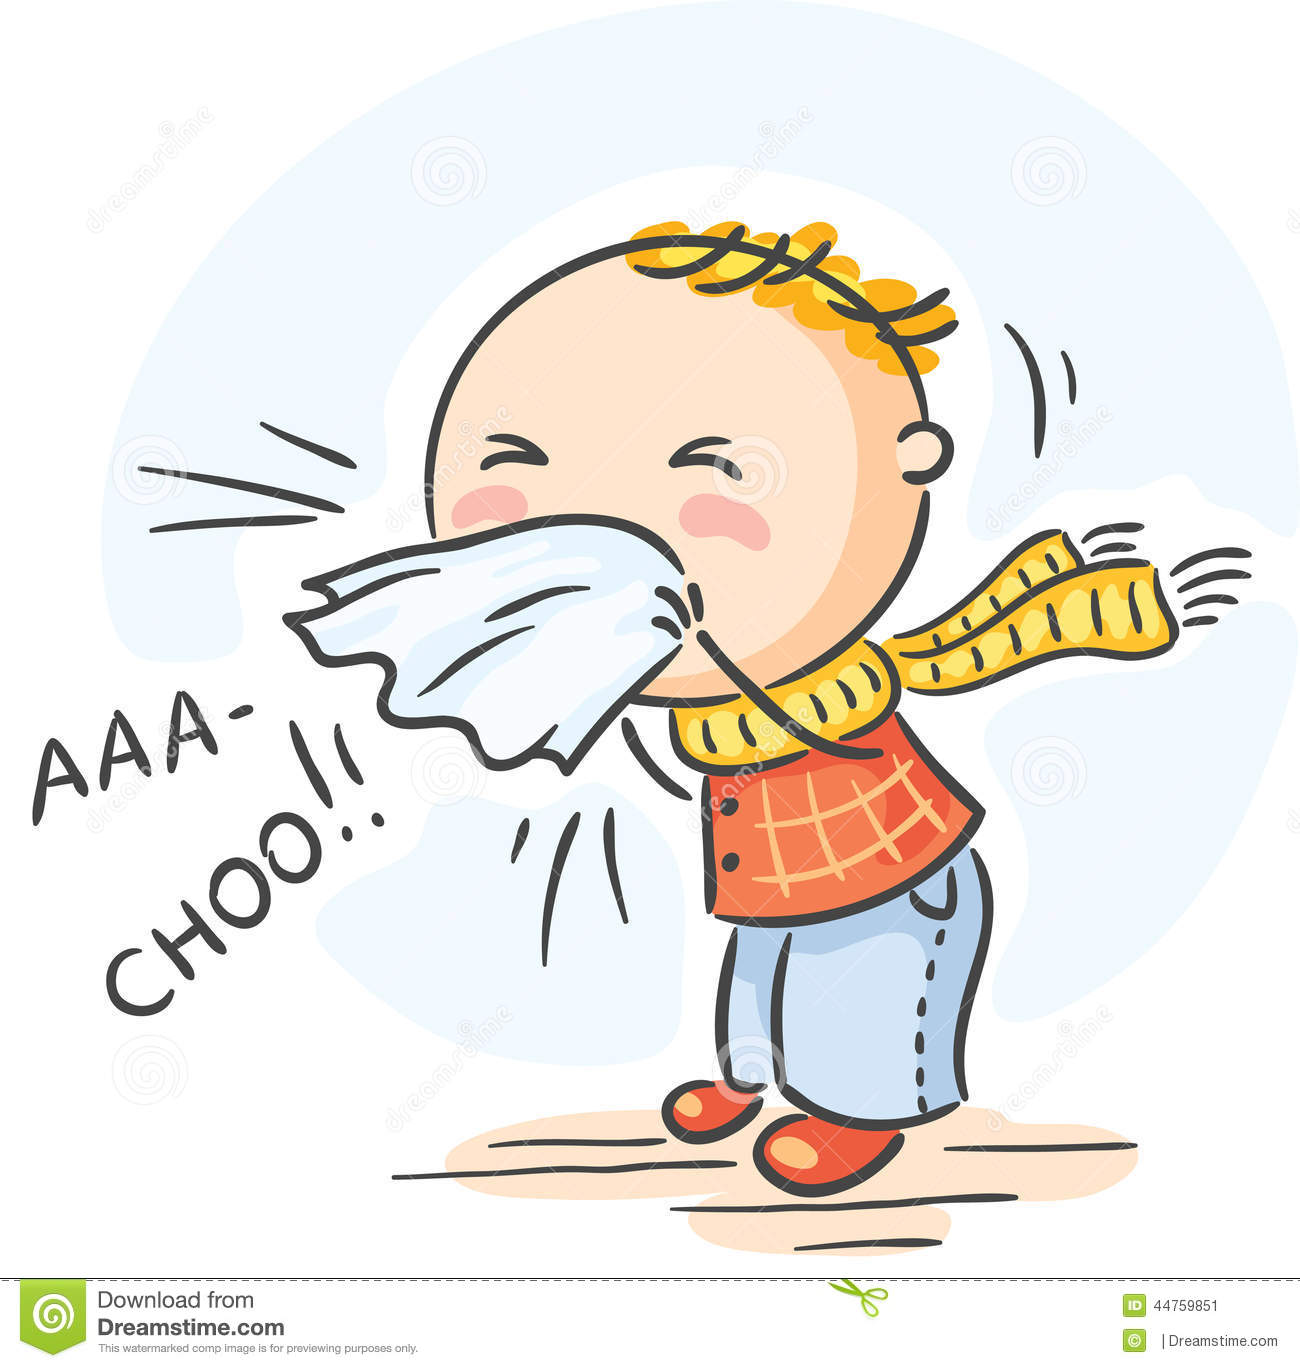 Sneezing Illustrations and Clipart. 2,563 Sneezing royalty ...